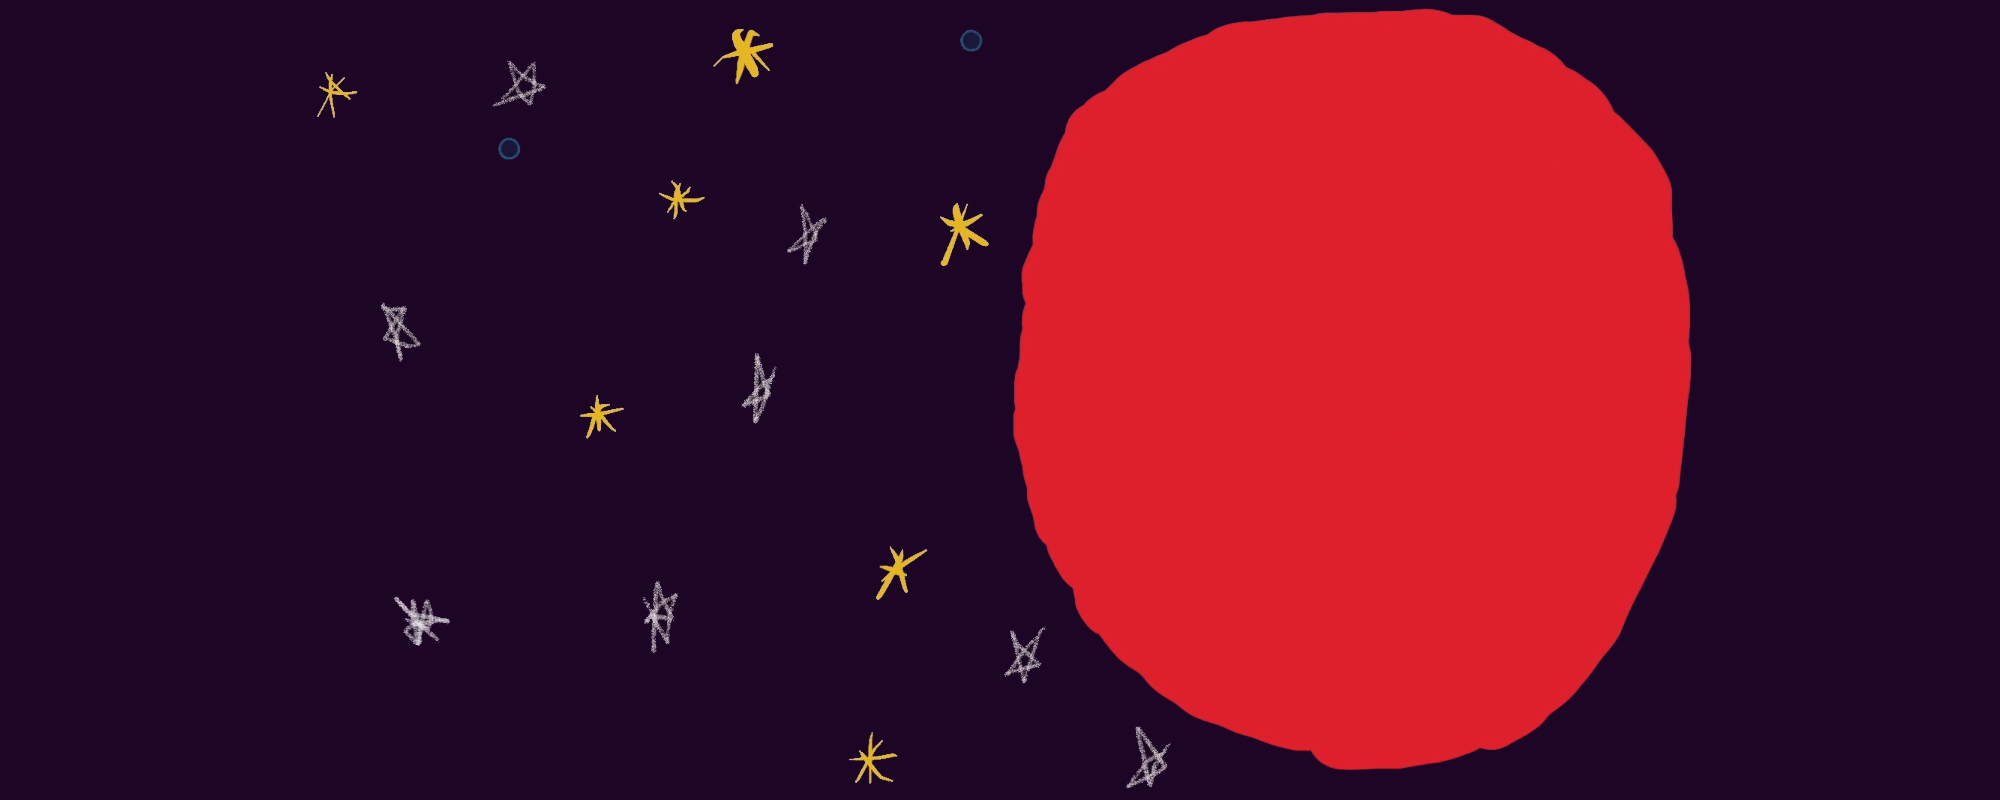 A black background with a red circle and stars